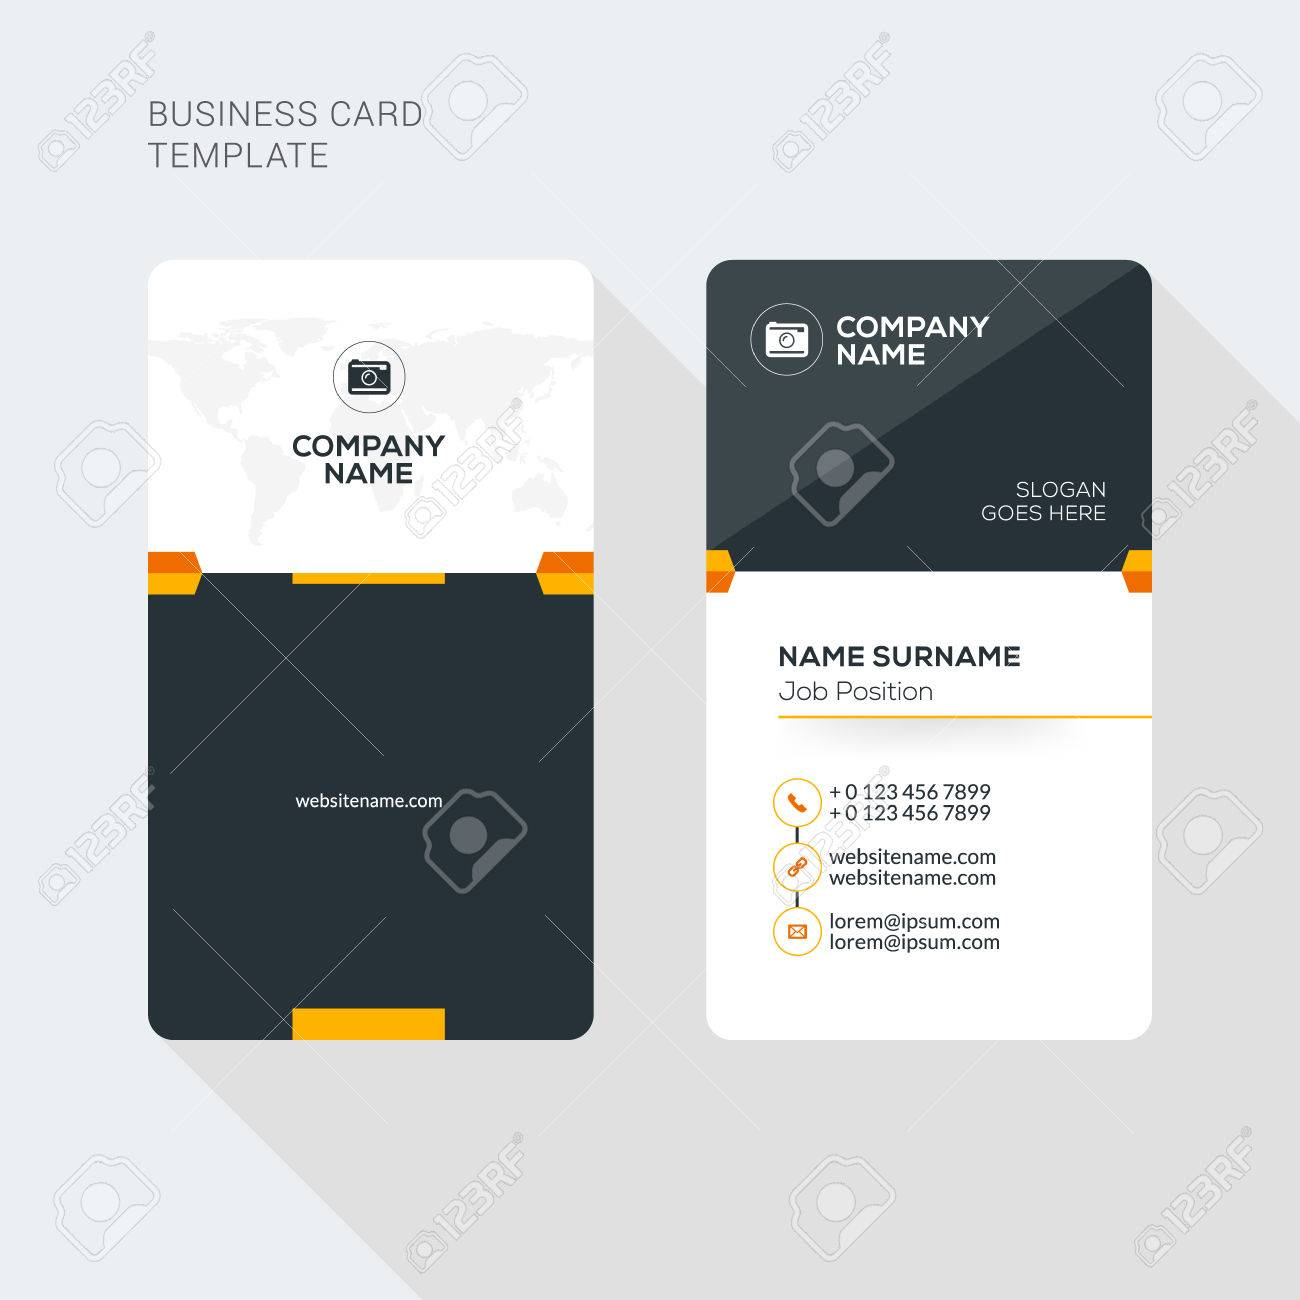 Fantastic geographics business card template ideas business card amazing geographics business cards templates ideas business card solutioingenieria Images